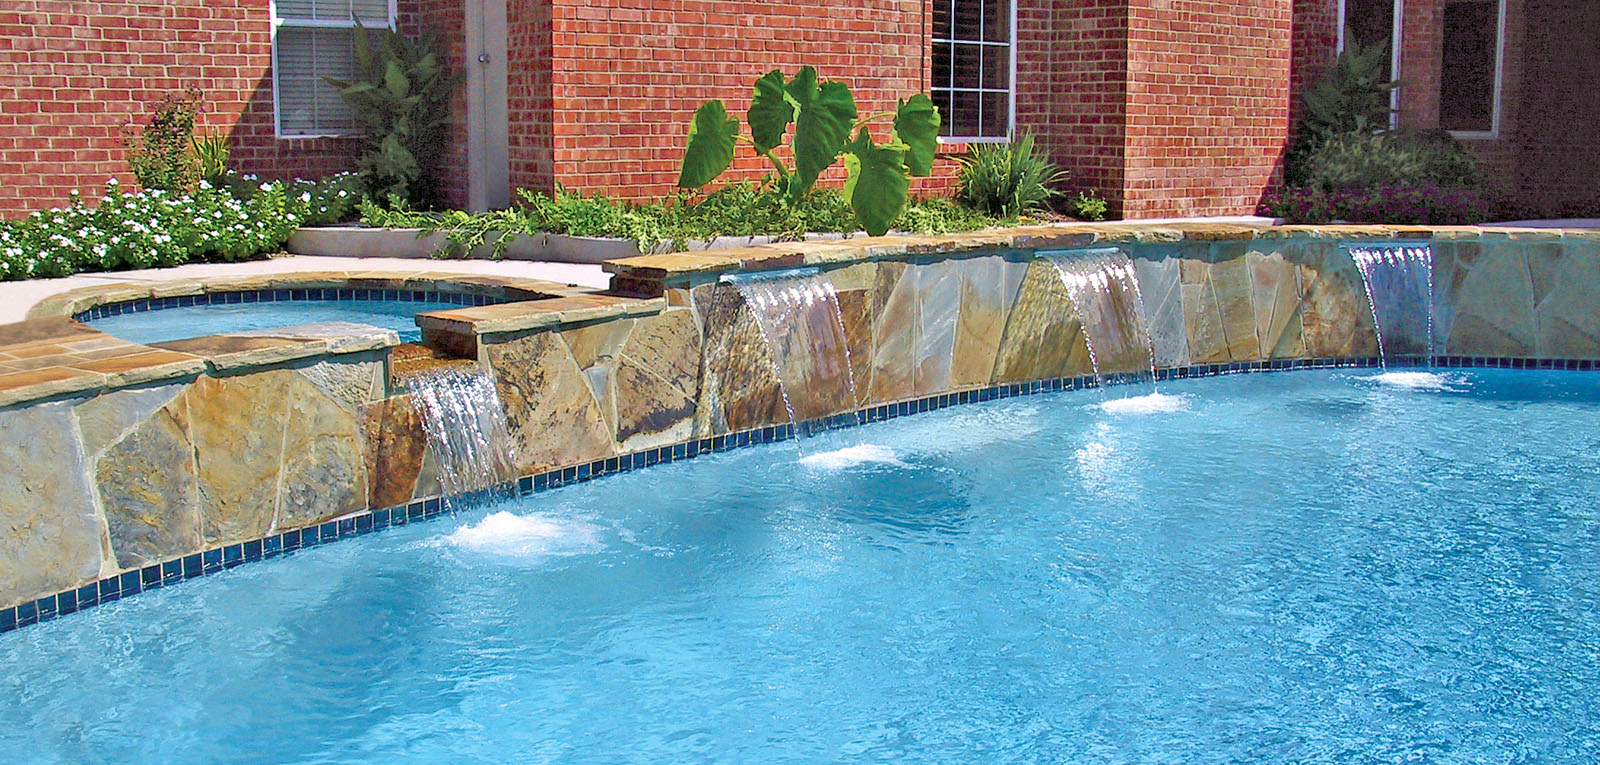 Cascade waterfalls blue haven custom swimming pool and for Pictures of a pool